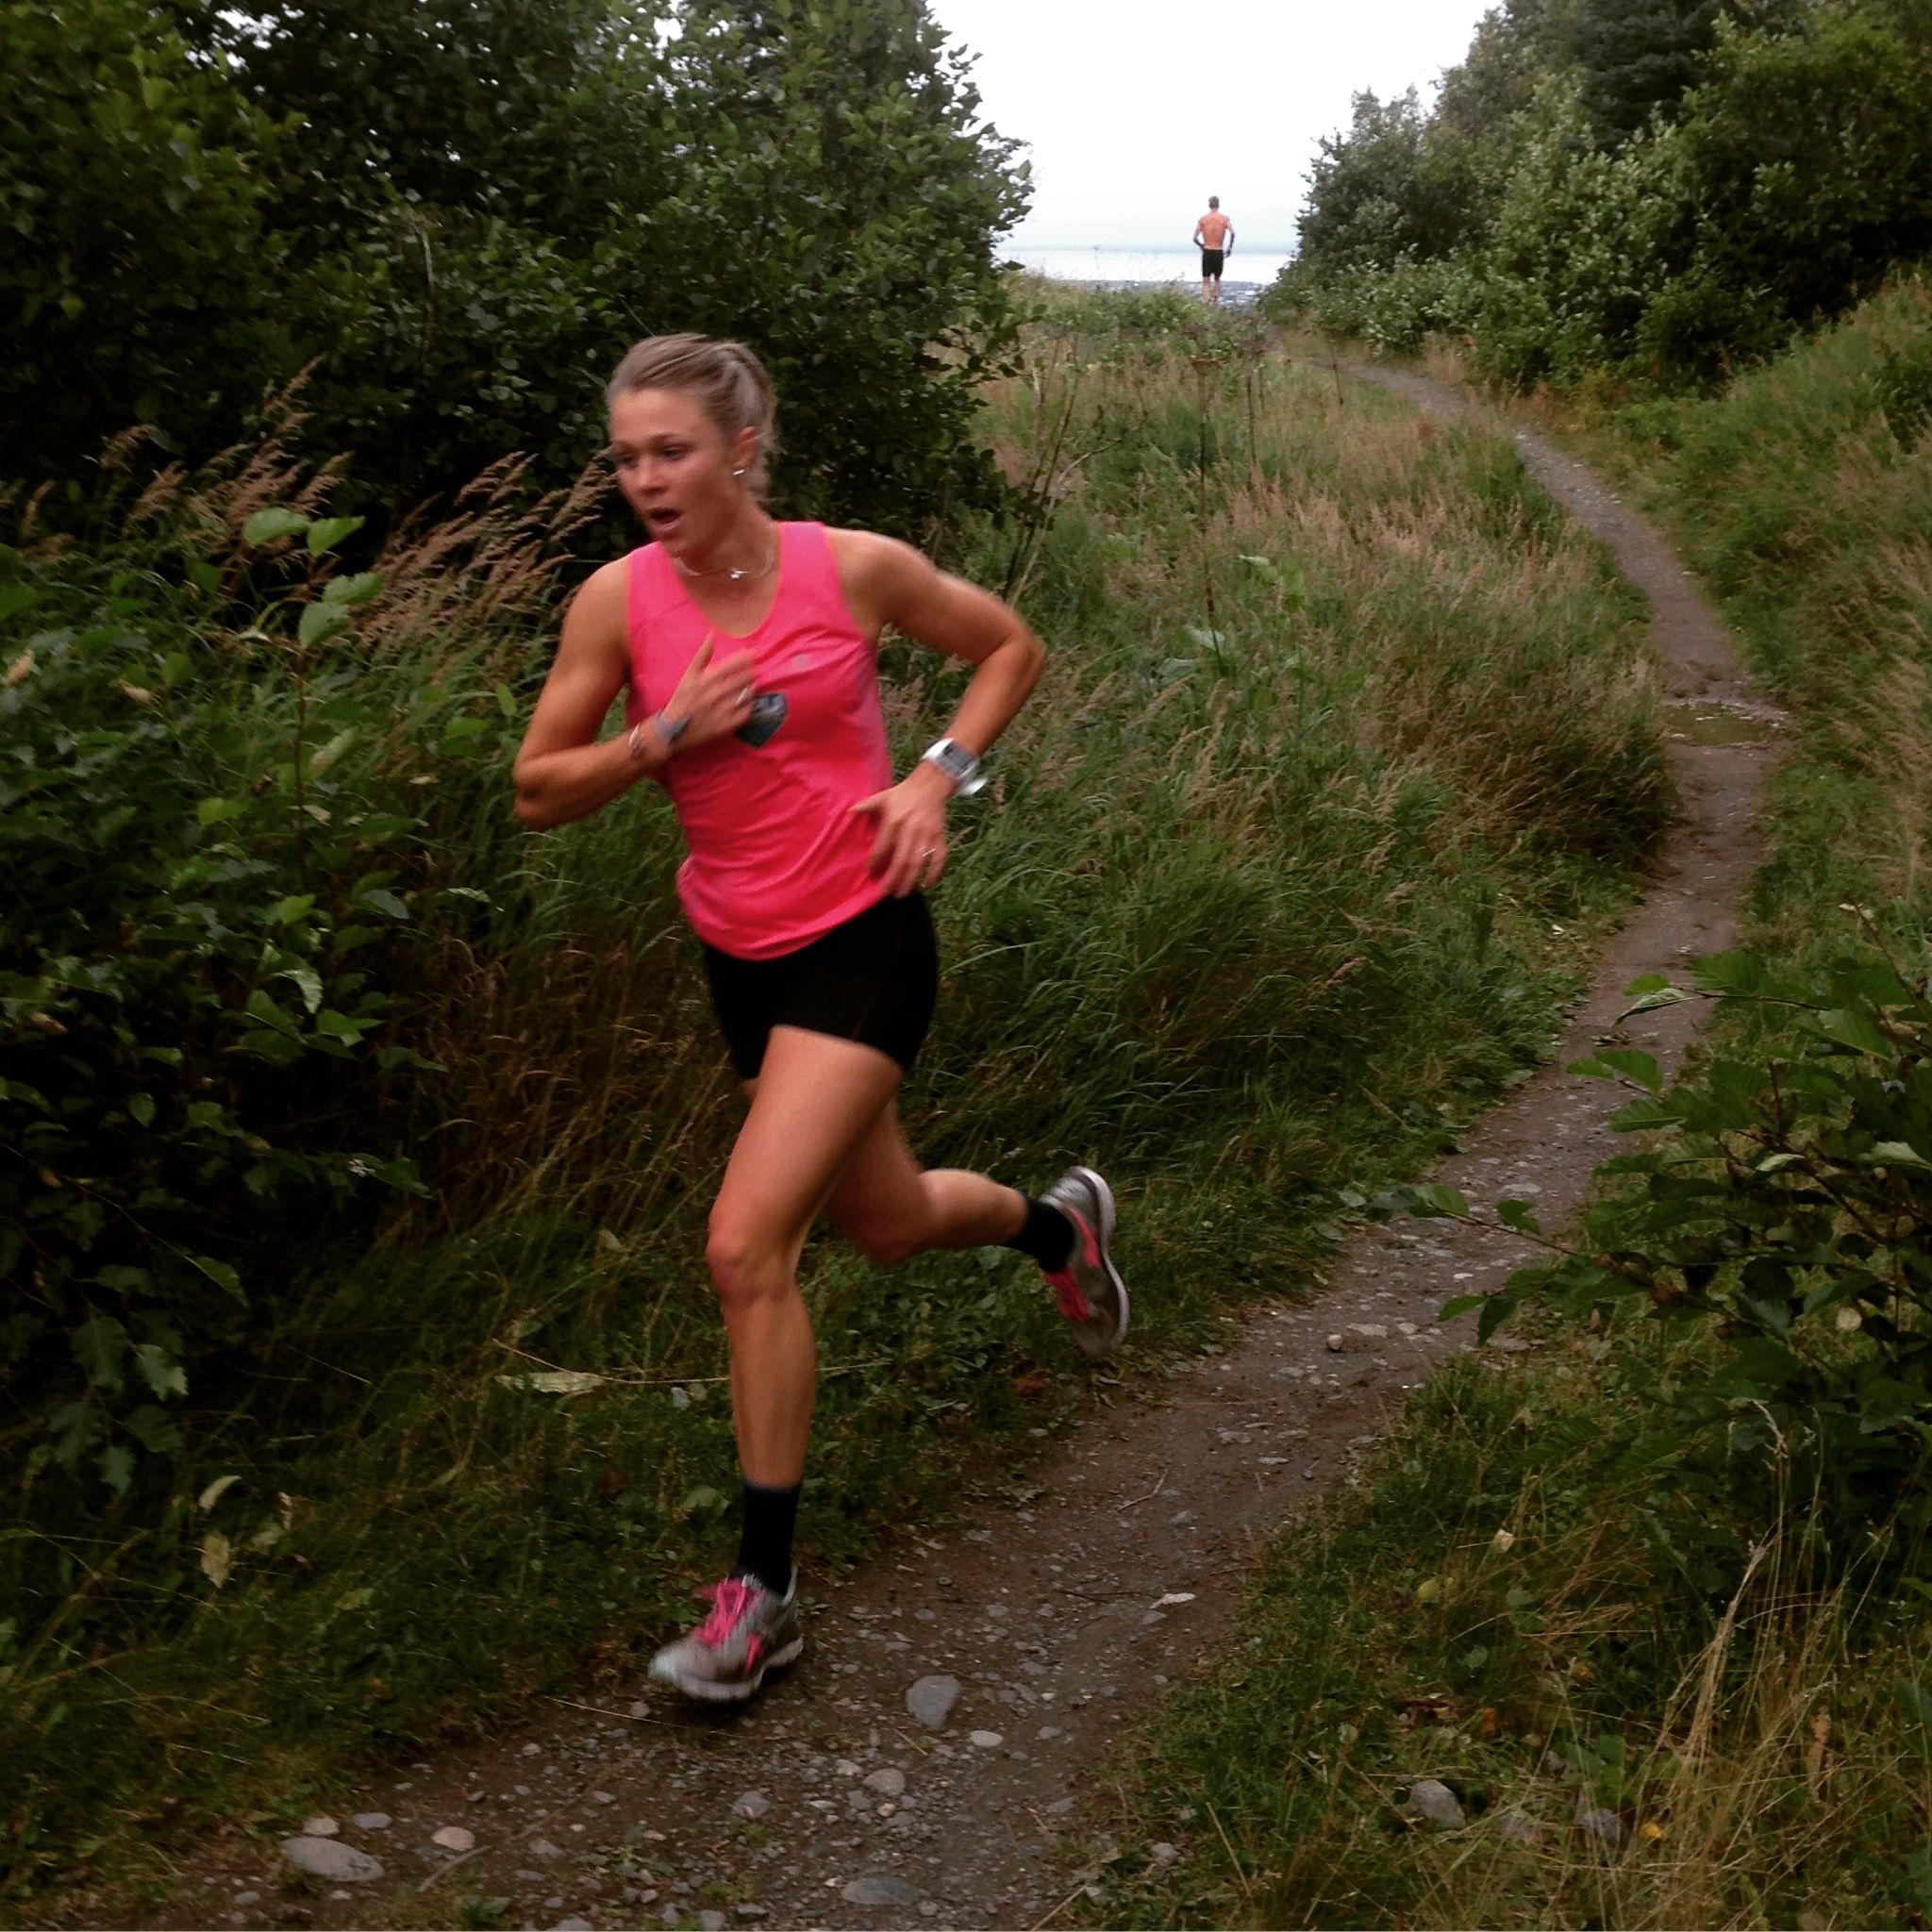 Yeah for uphill running!